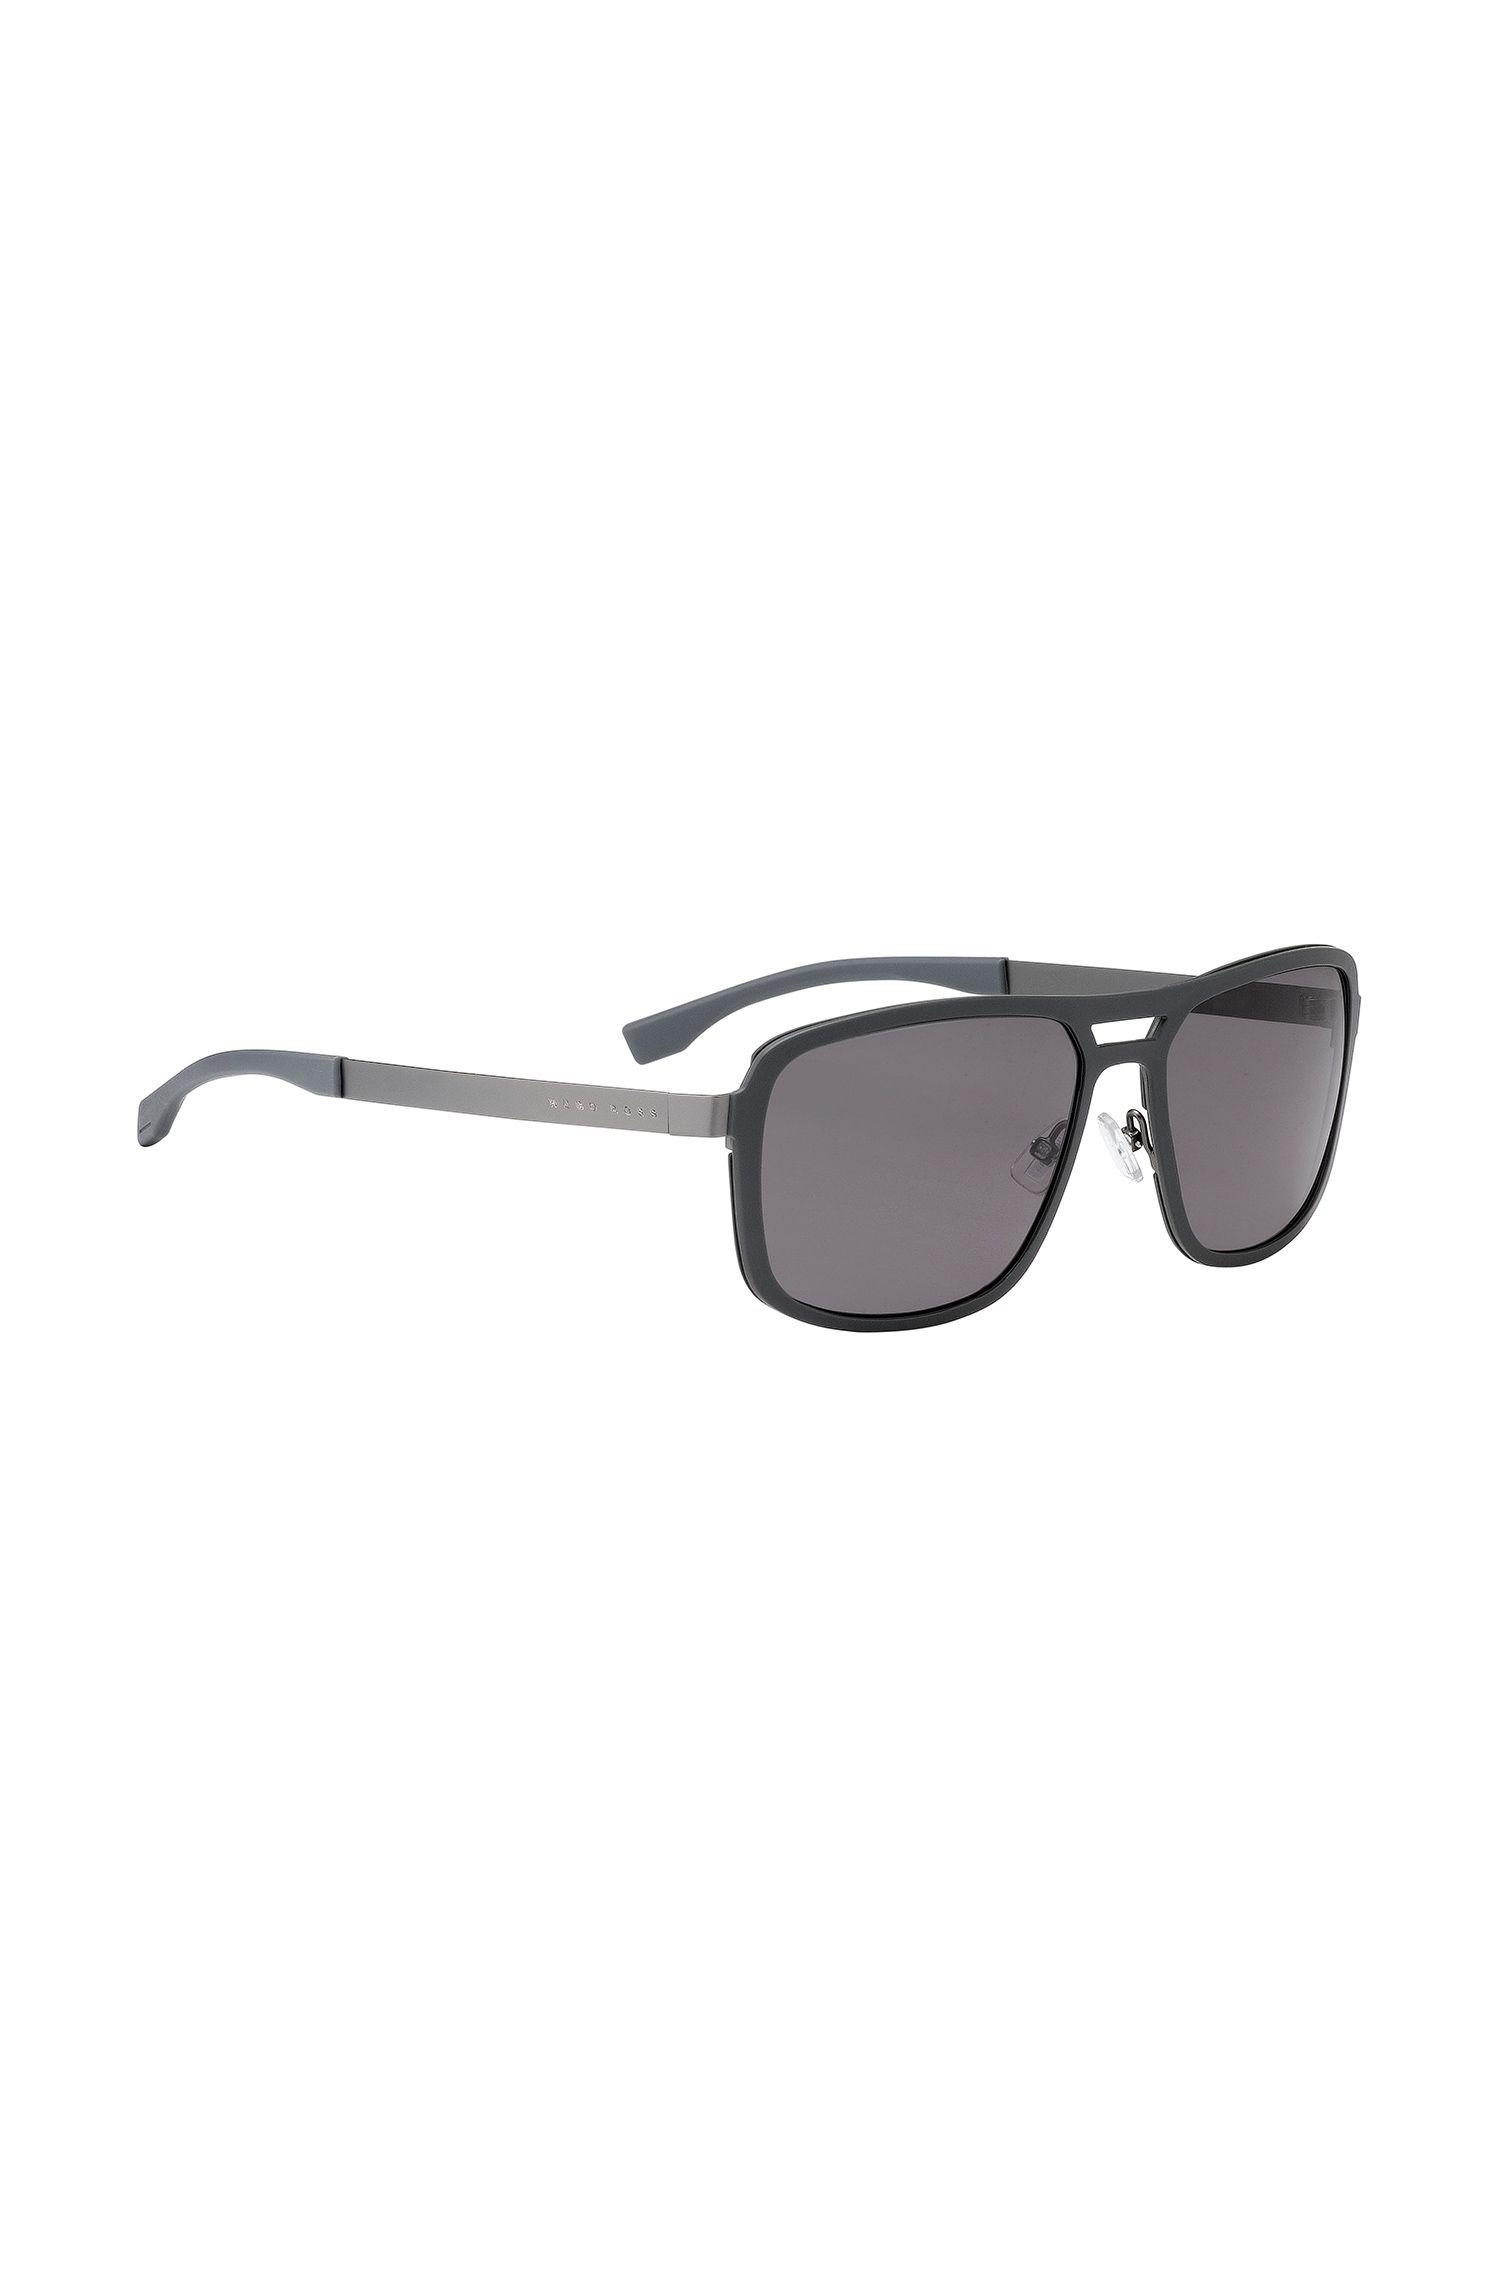 Sunglasses: 'BOSS 0724/S'